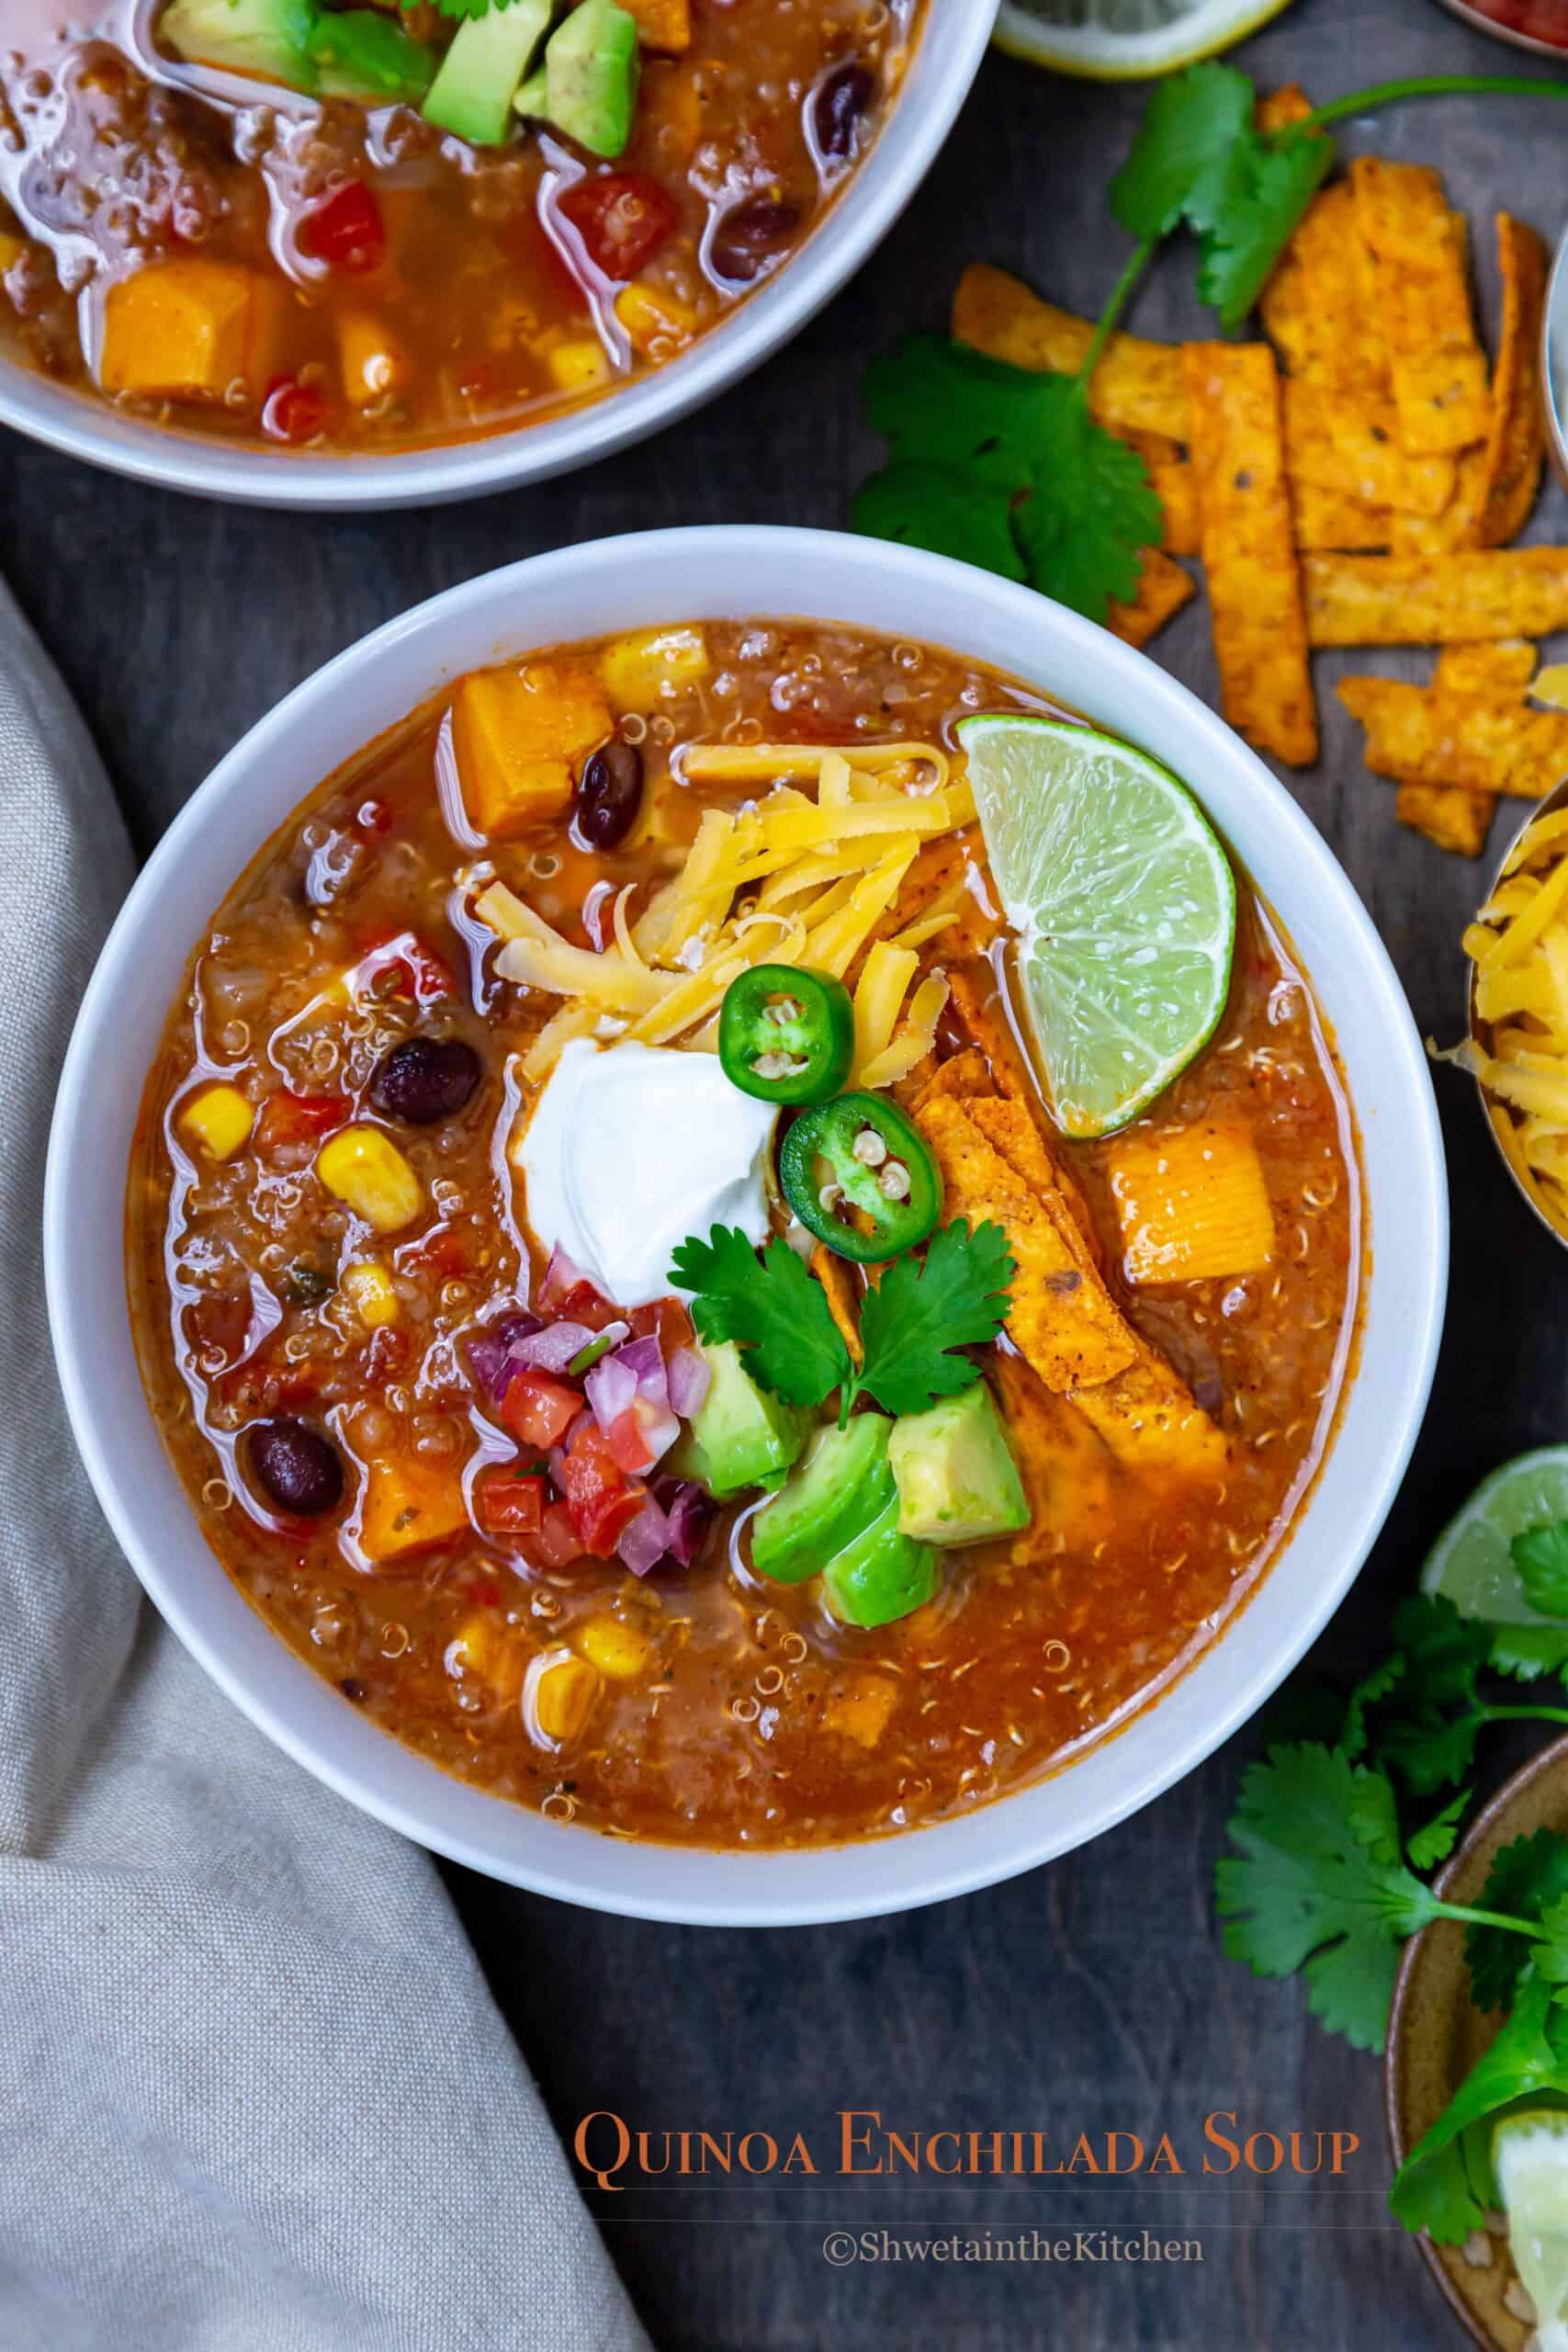 Quinoa Enchiladas Soup in bowl with toppings, cheese and lime.